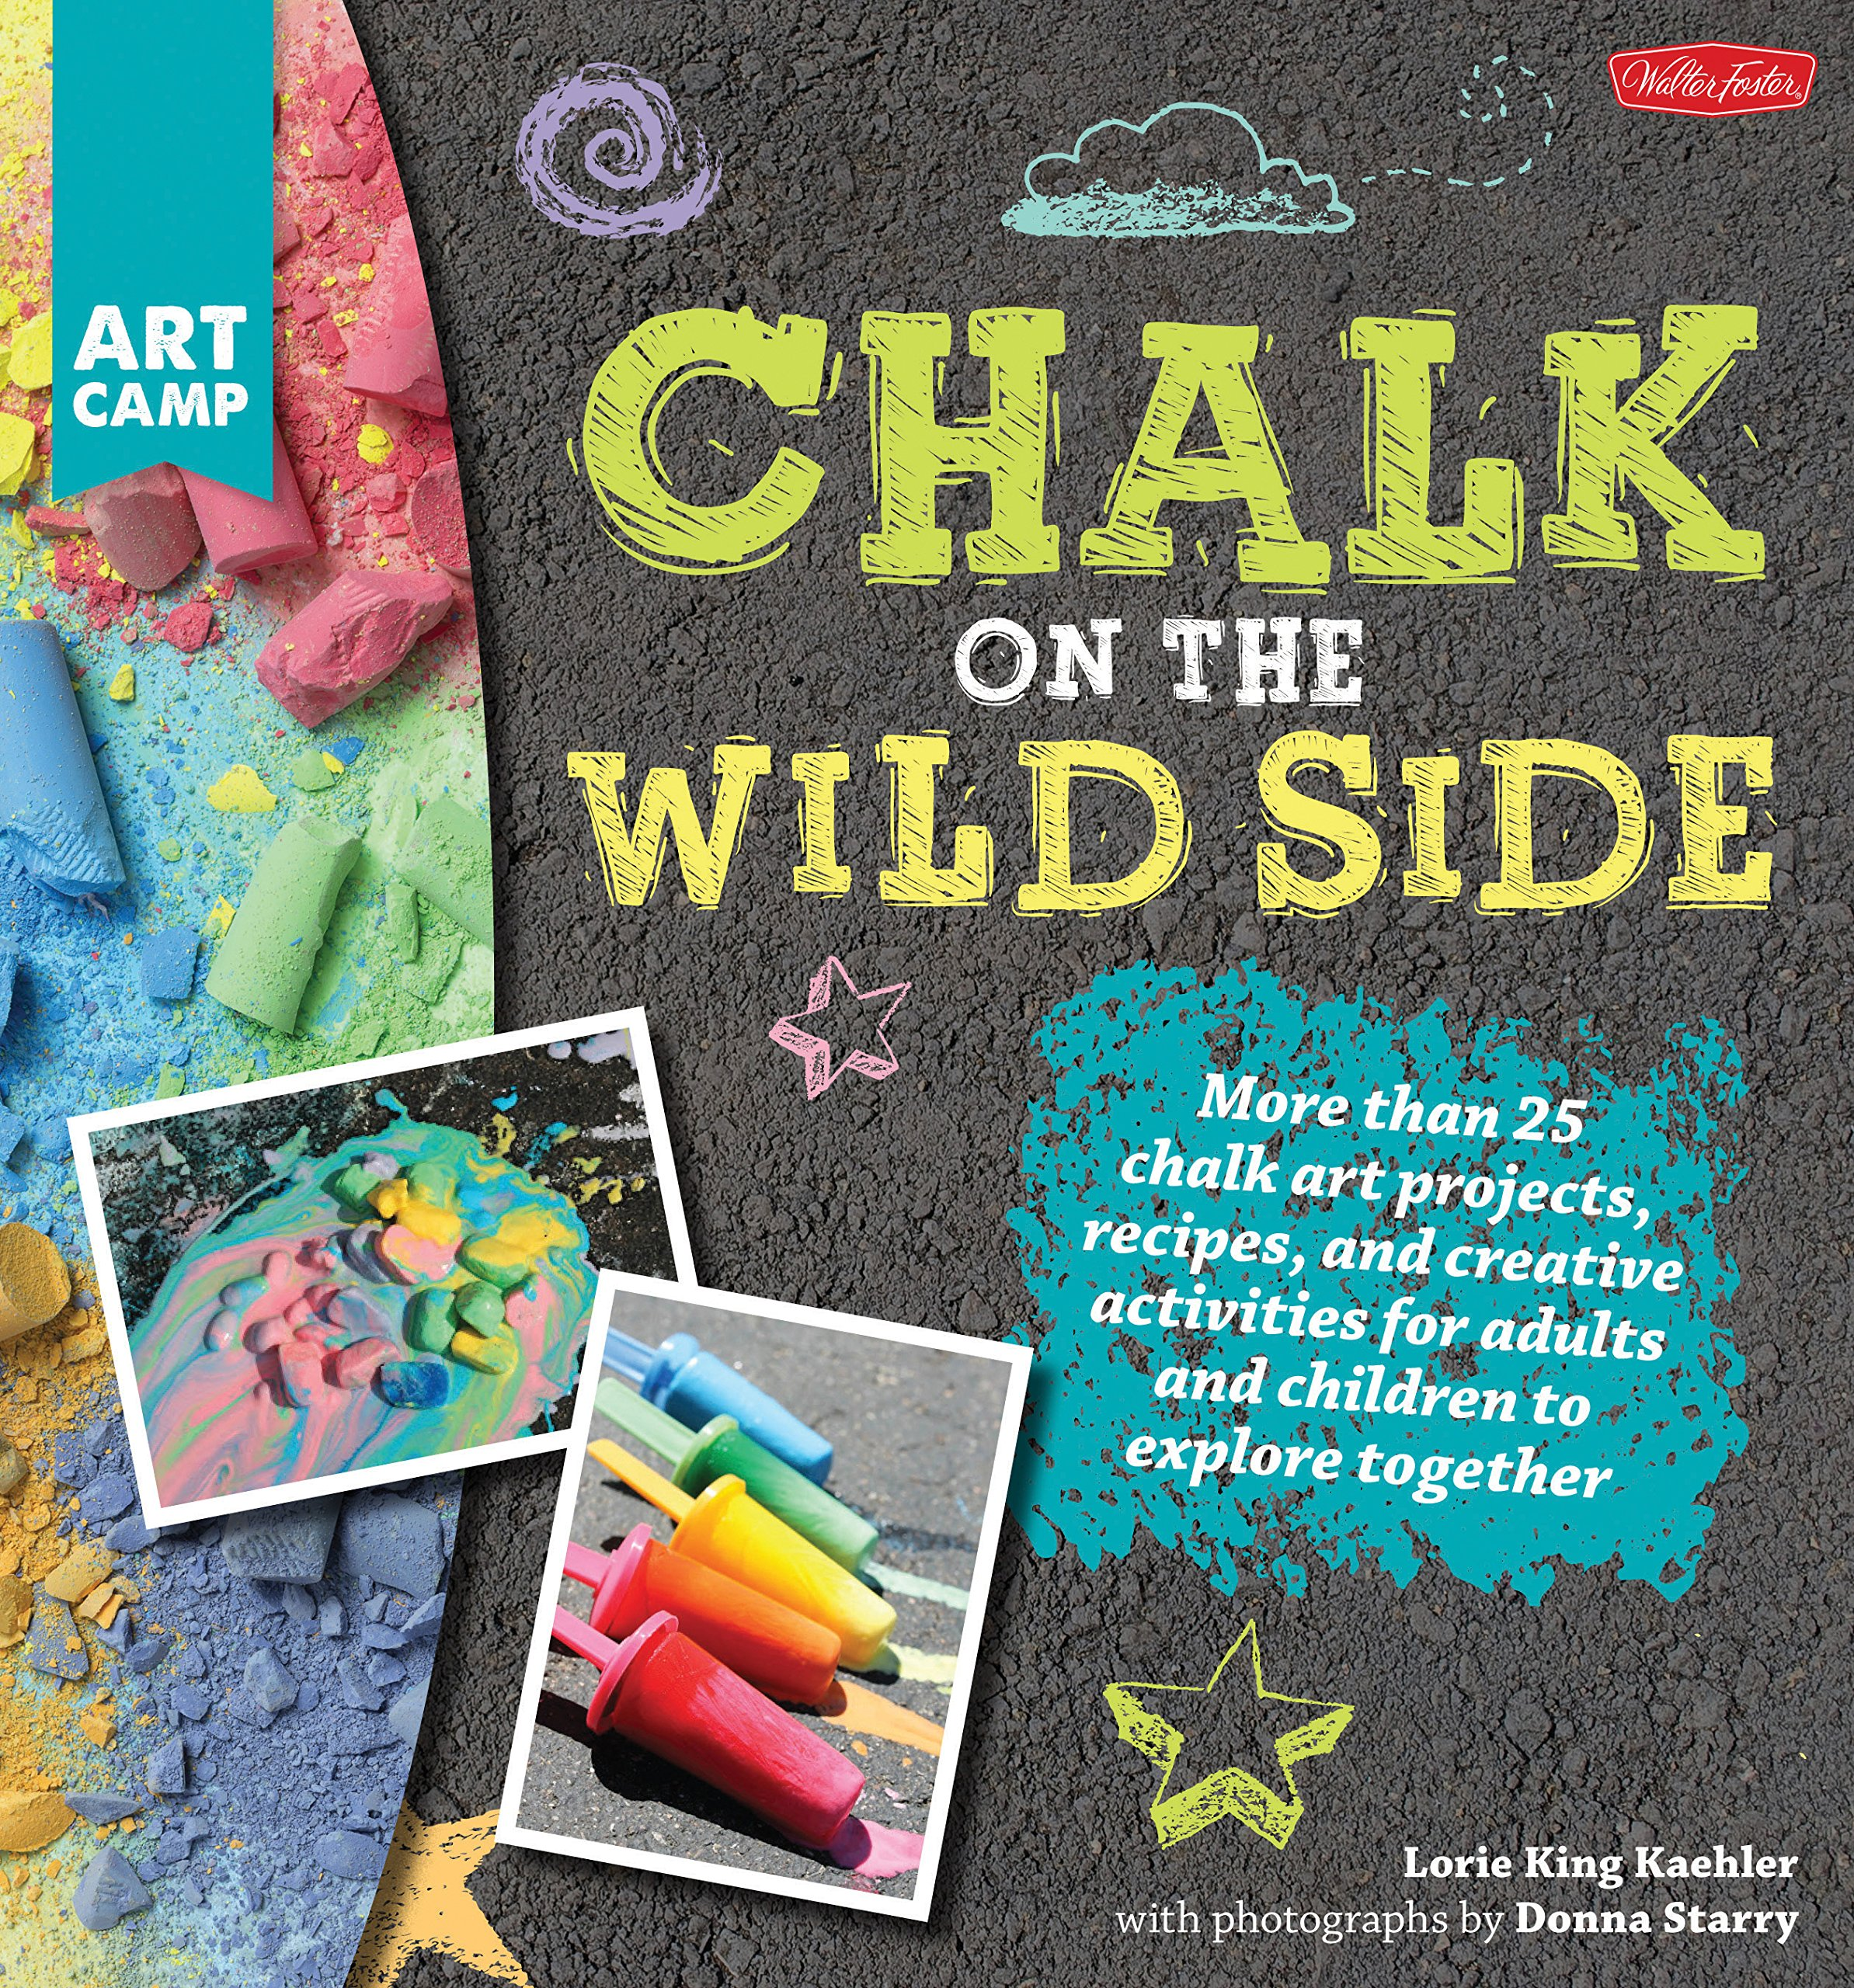 Chalk On The Wild Side More Than 25 Art Projects Recipes And Creative Activities For Adults Children To Explore Together Camp Lorie King